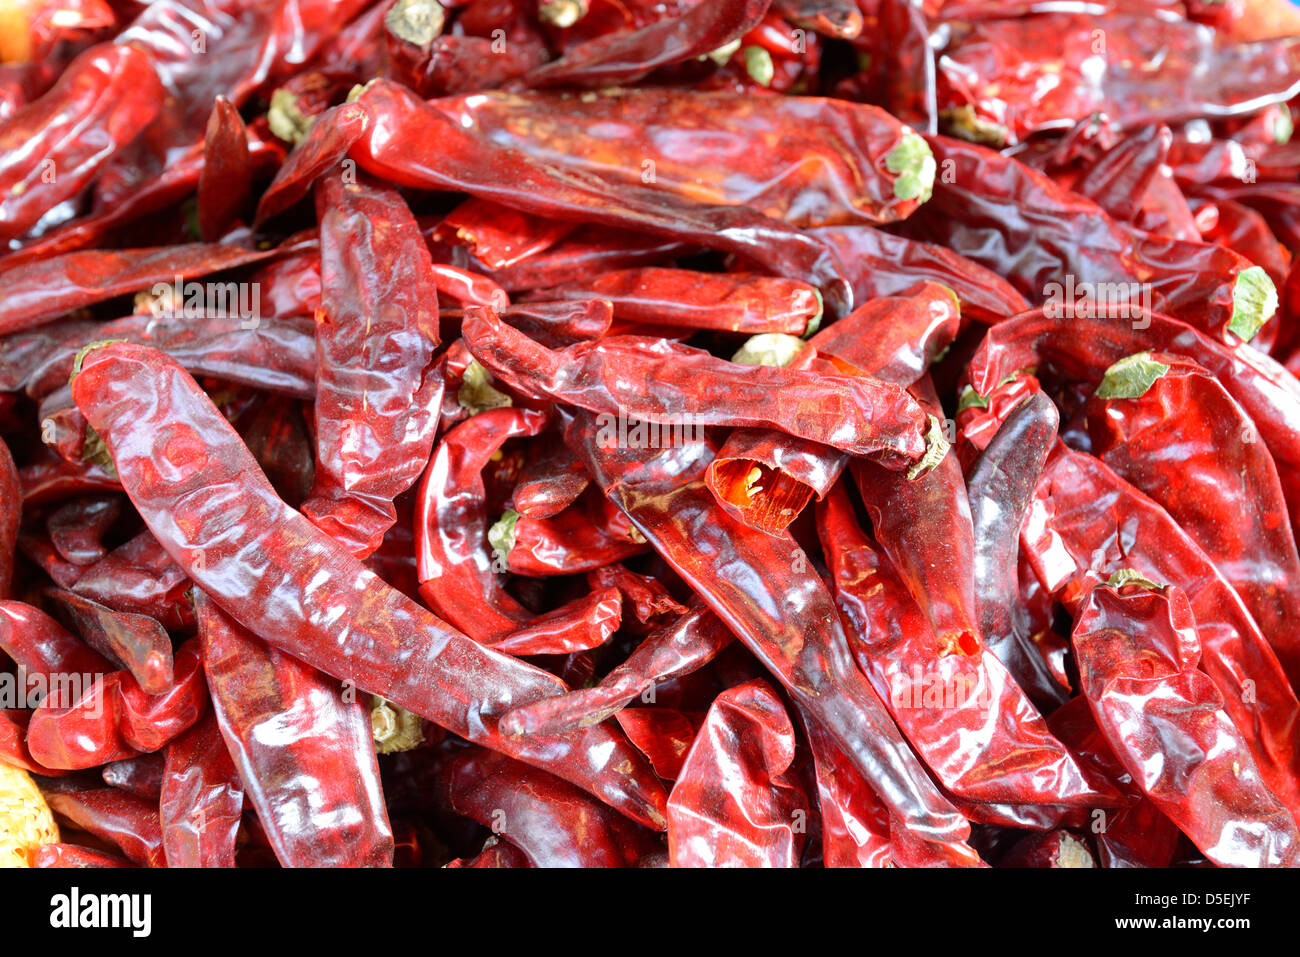 pile of spicy peppers at a market - Stock Image